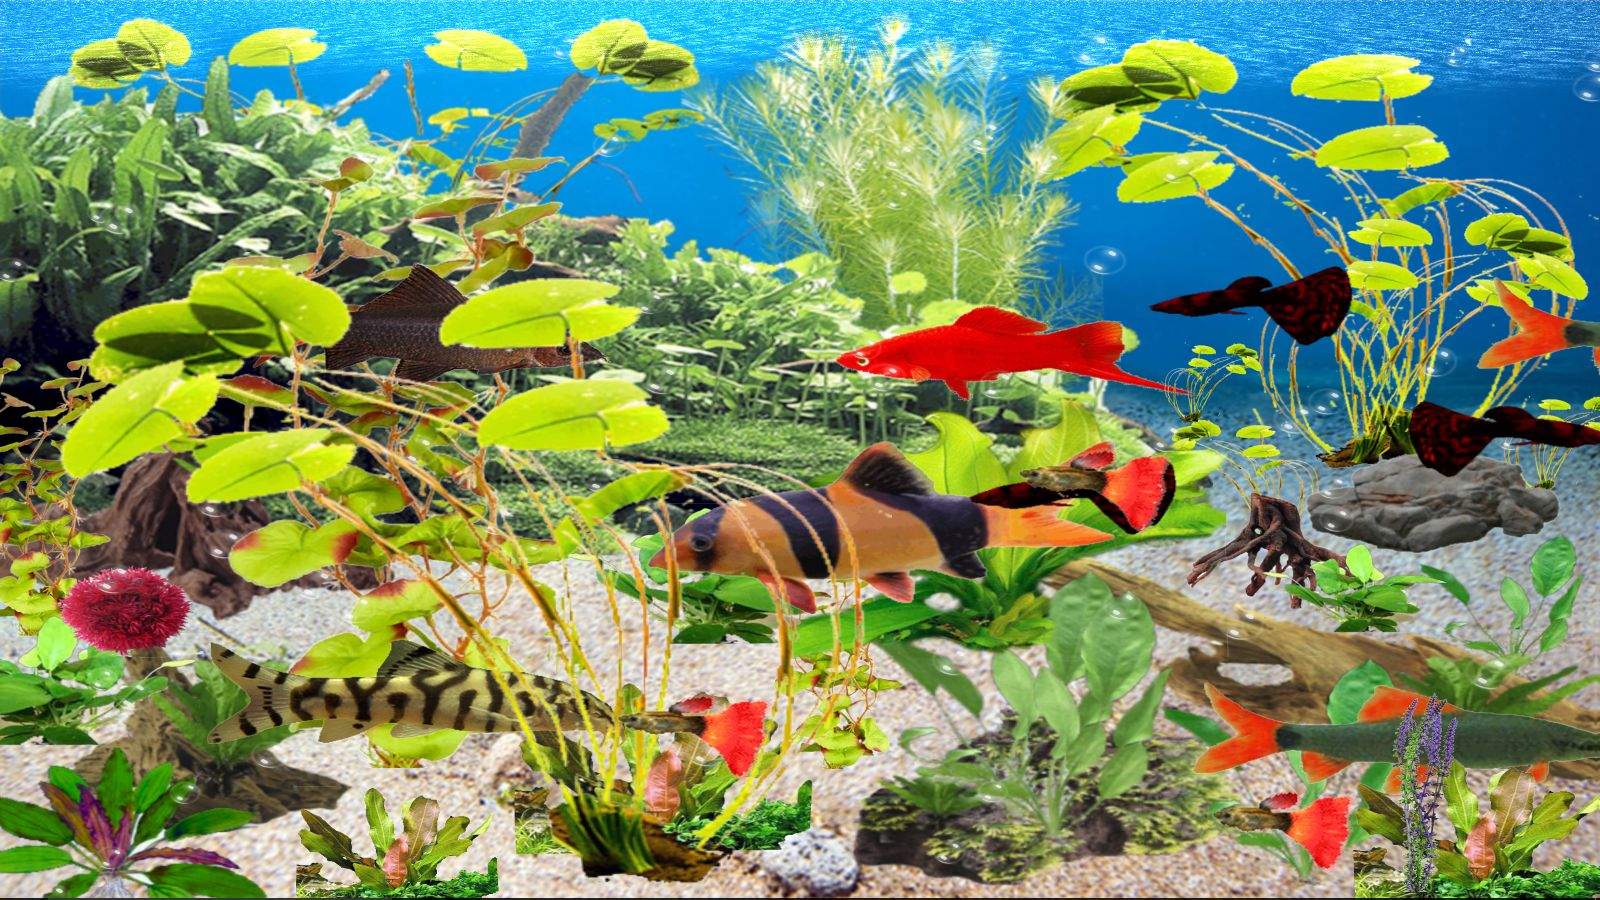 Clown Loach Aquarium [Download] (Clown Loach Aquarium)